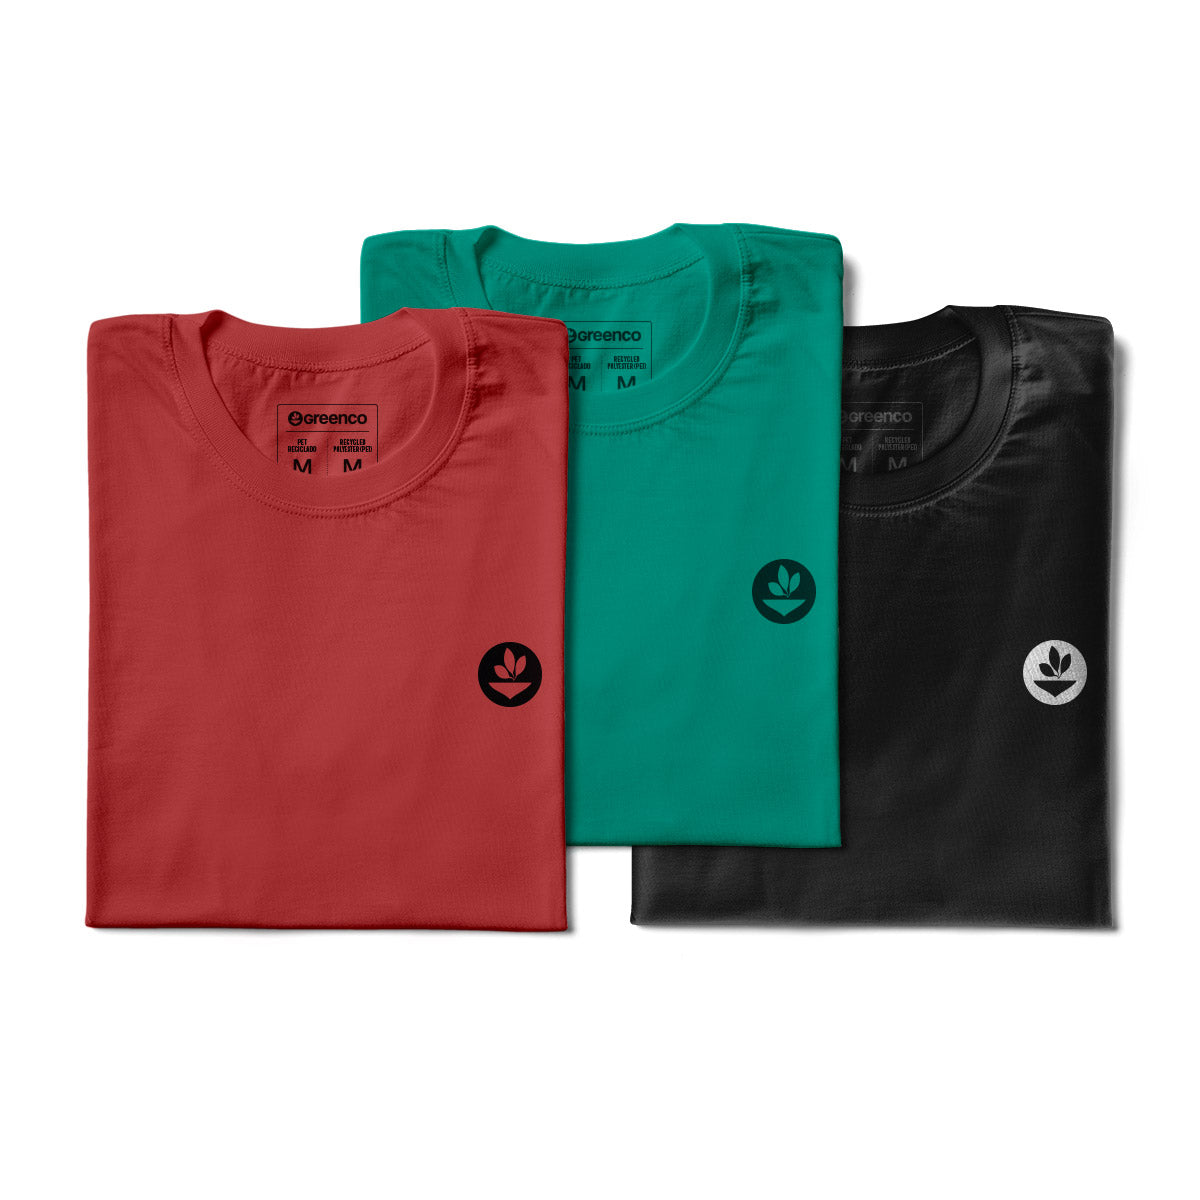 Basic Men's Kit Recycled Polyester (PET) - 3 t-shirts